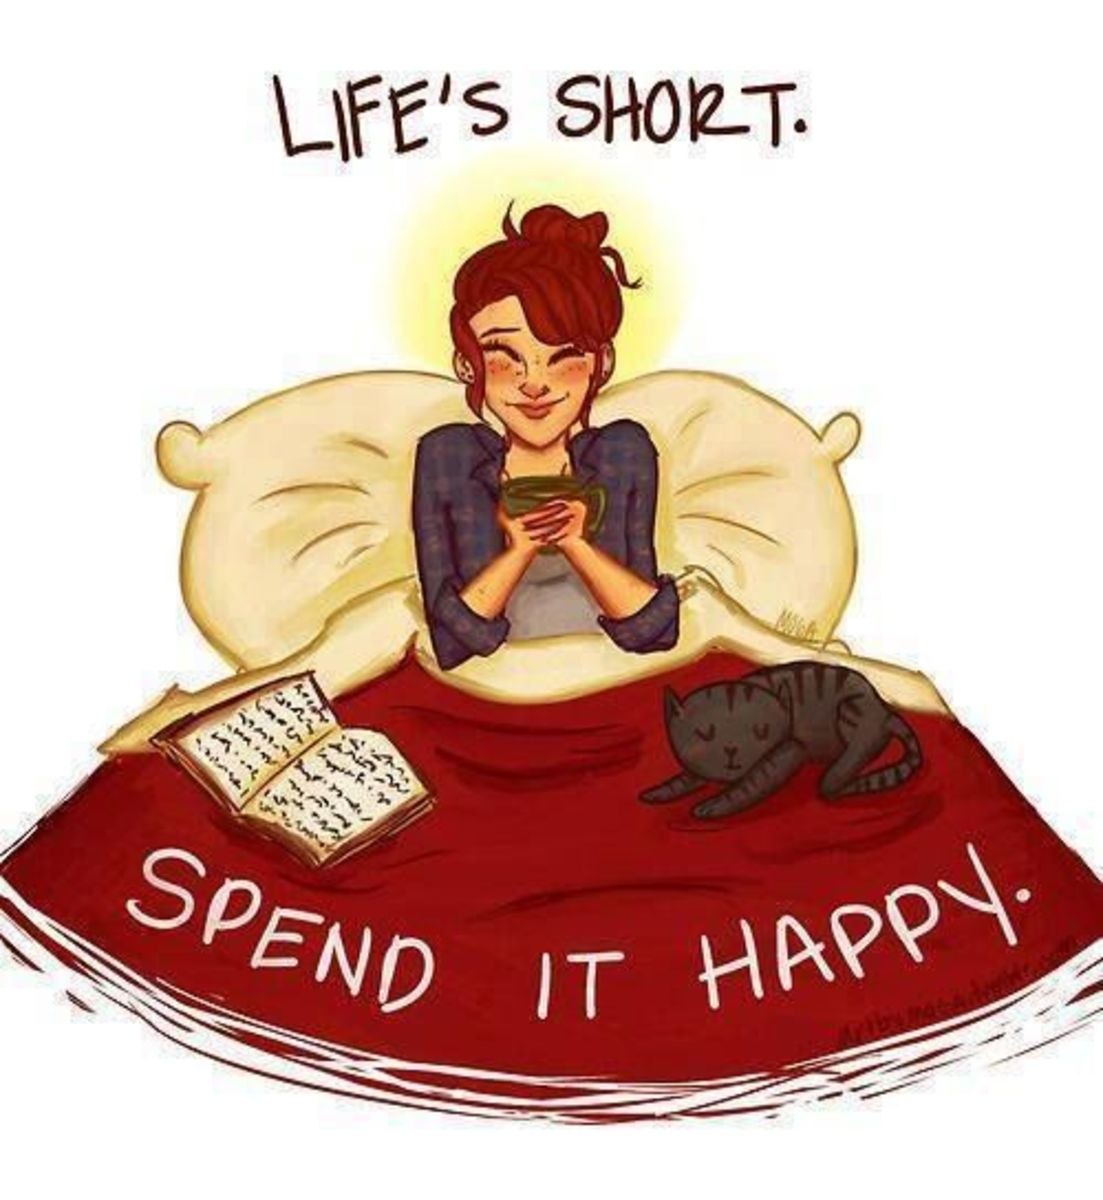 Life's Short. Spend it Happy